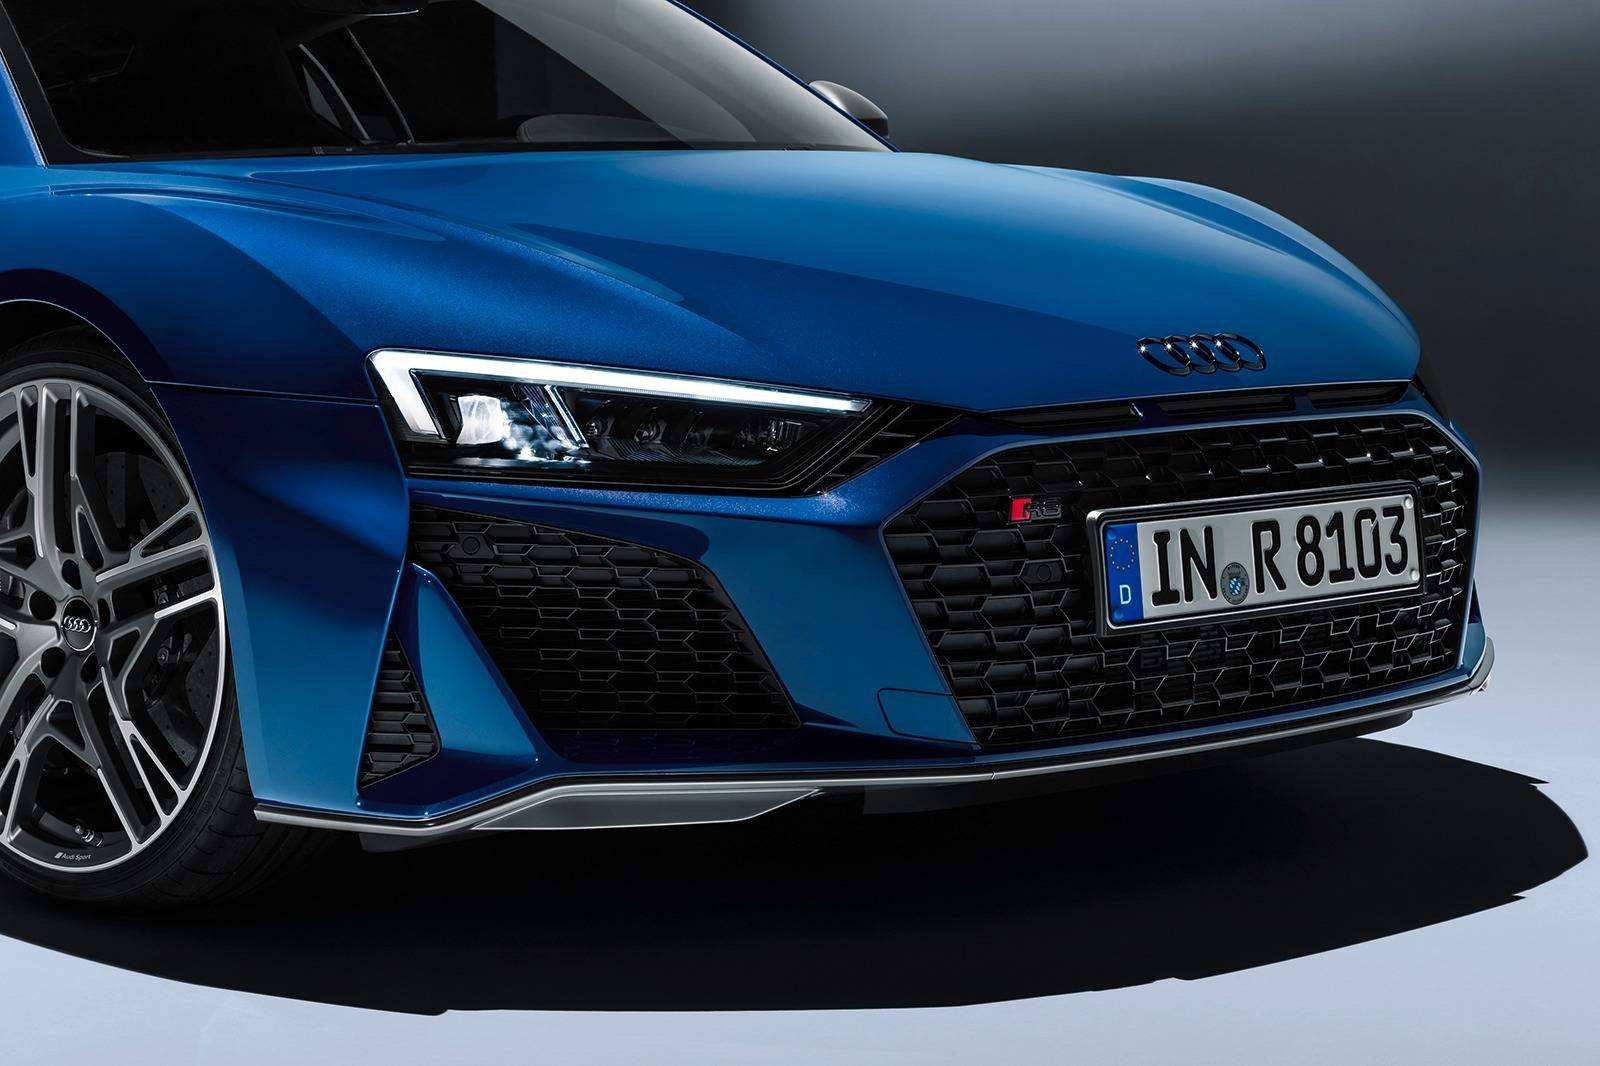 15 New The R8 Audi 2019 Review And Price Performance and New Engine with The R8 Audi 2019 Review And Price